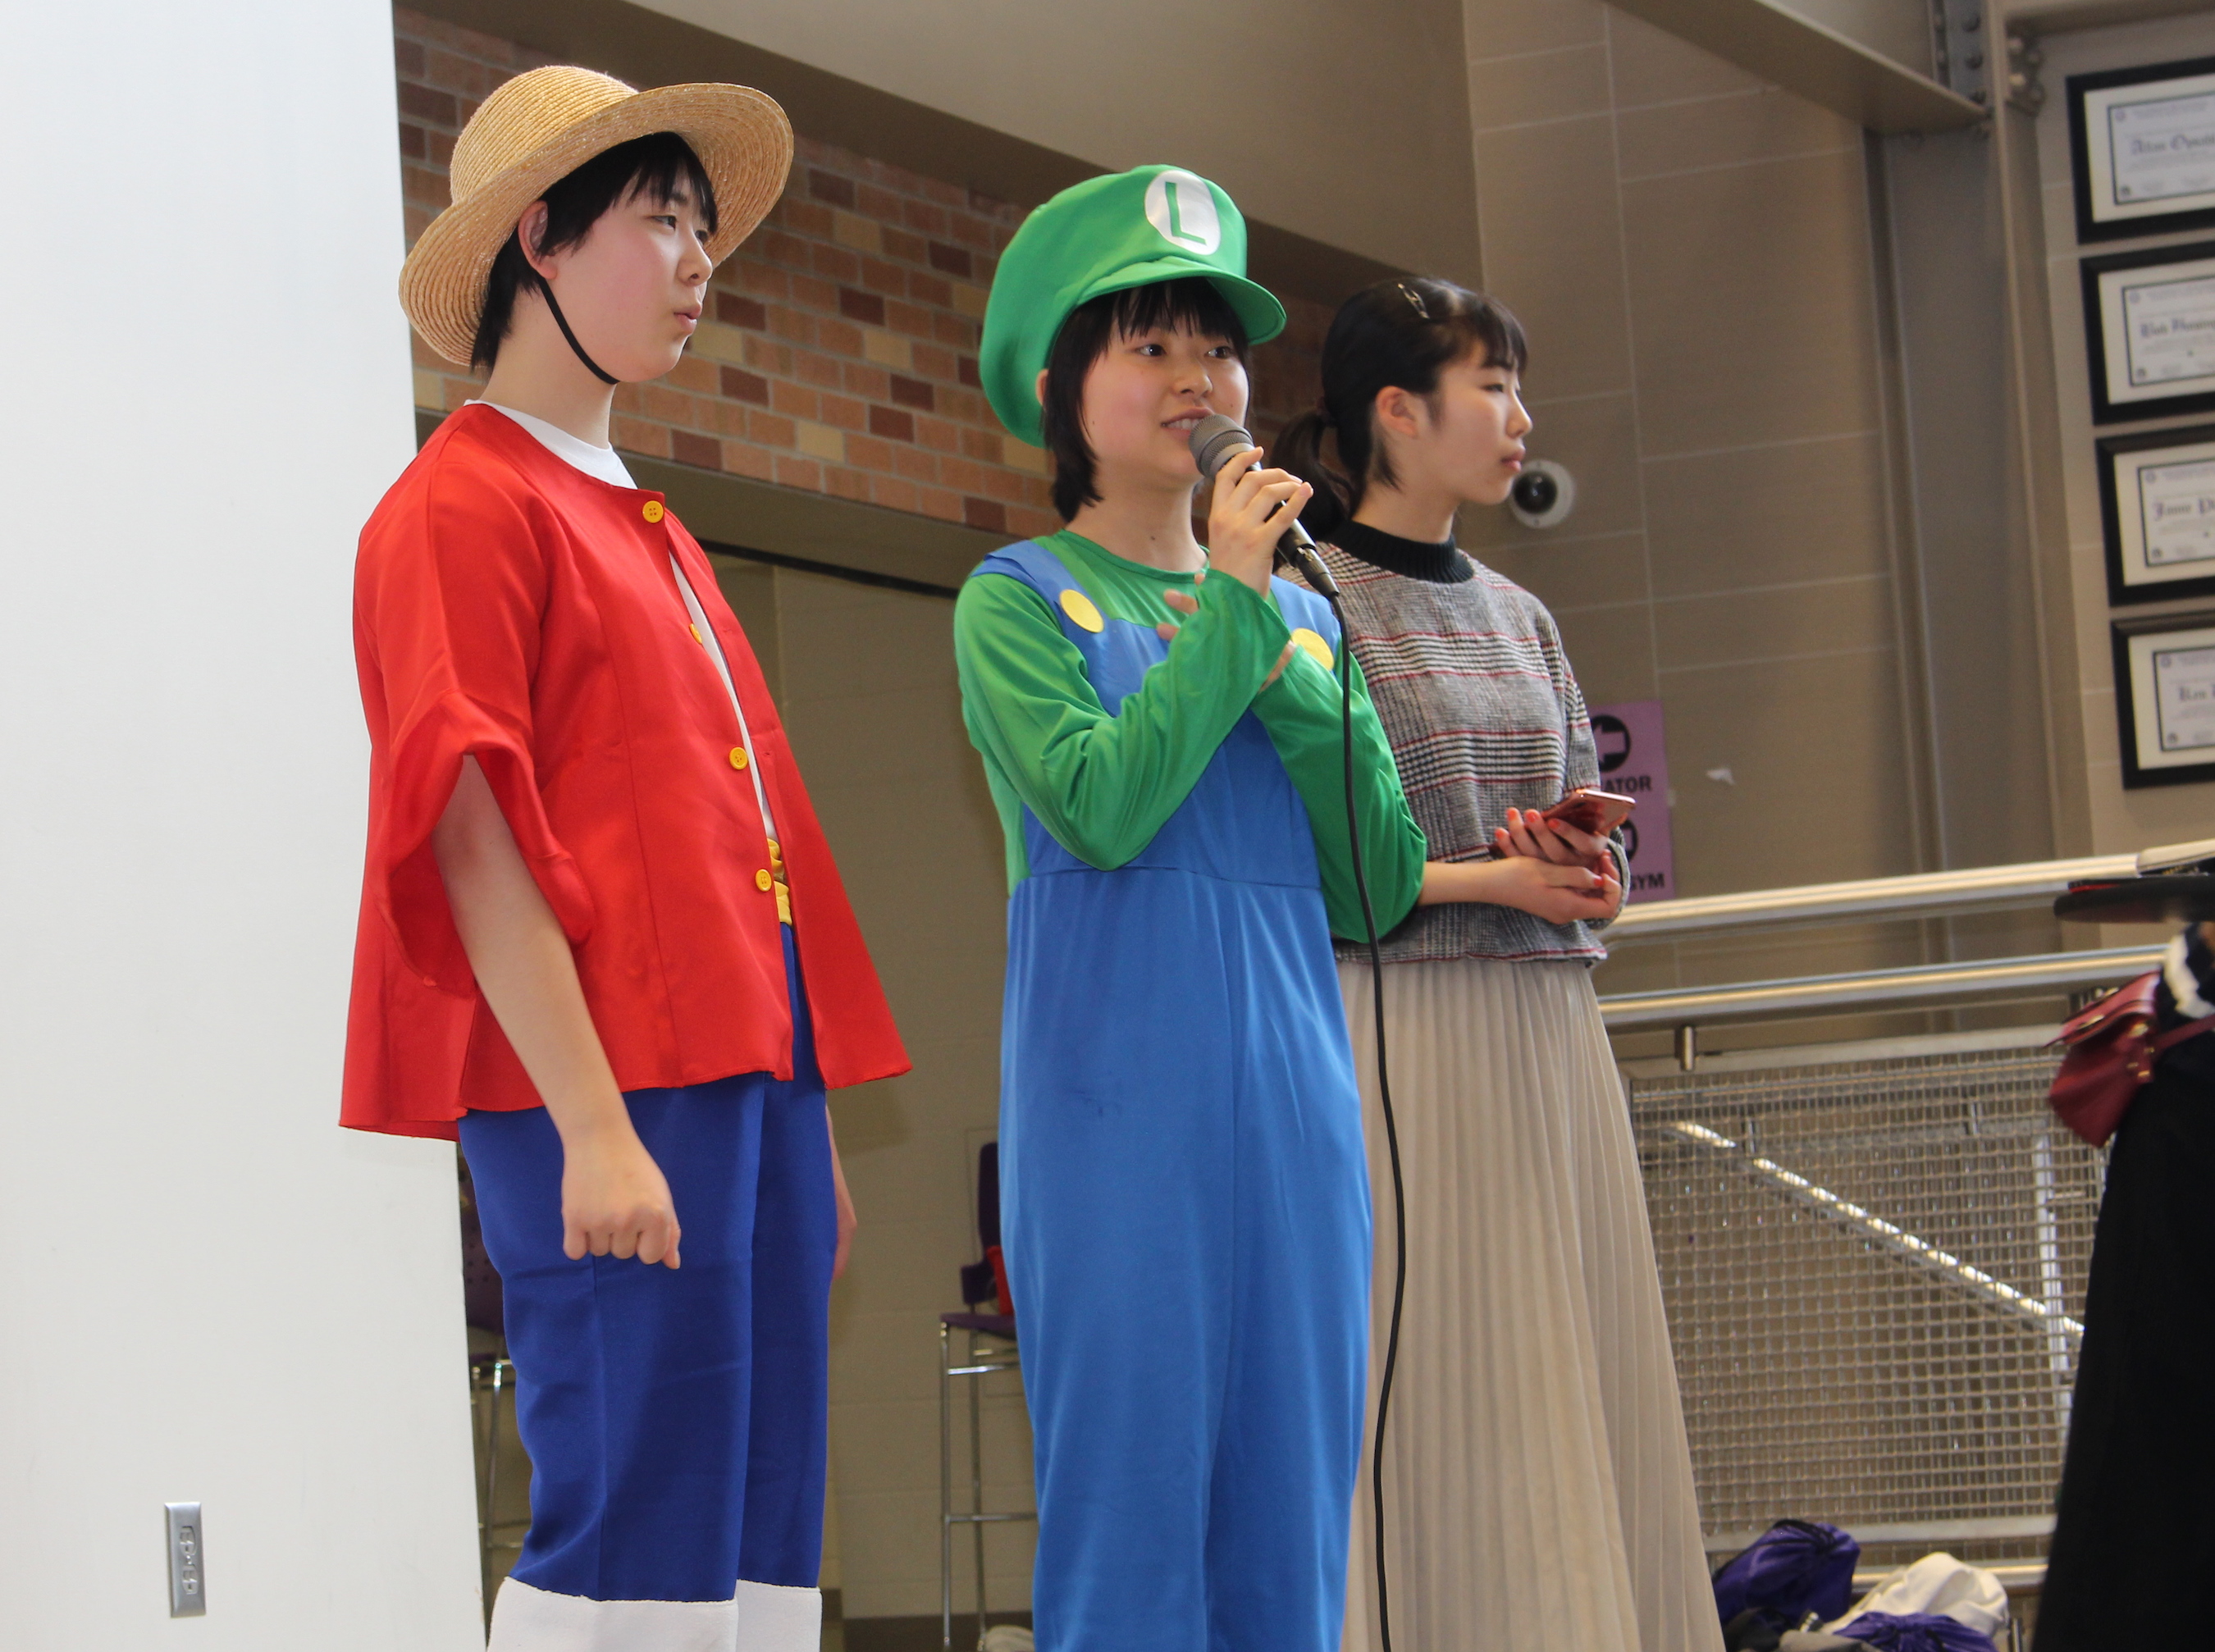 Students Honoka Yamamoto (left) and Himeka Miyoshi (center), of Kasugaoka High School in Osaka, Japan, perform in a skit March 1 at Southwest High School. Photo by Nate Gotlieb